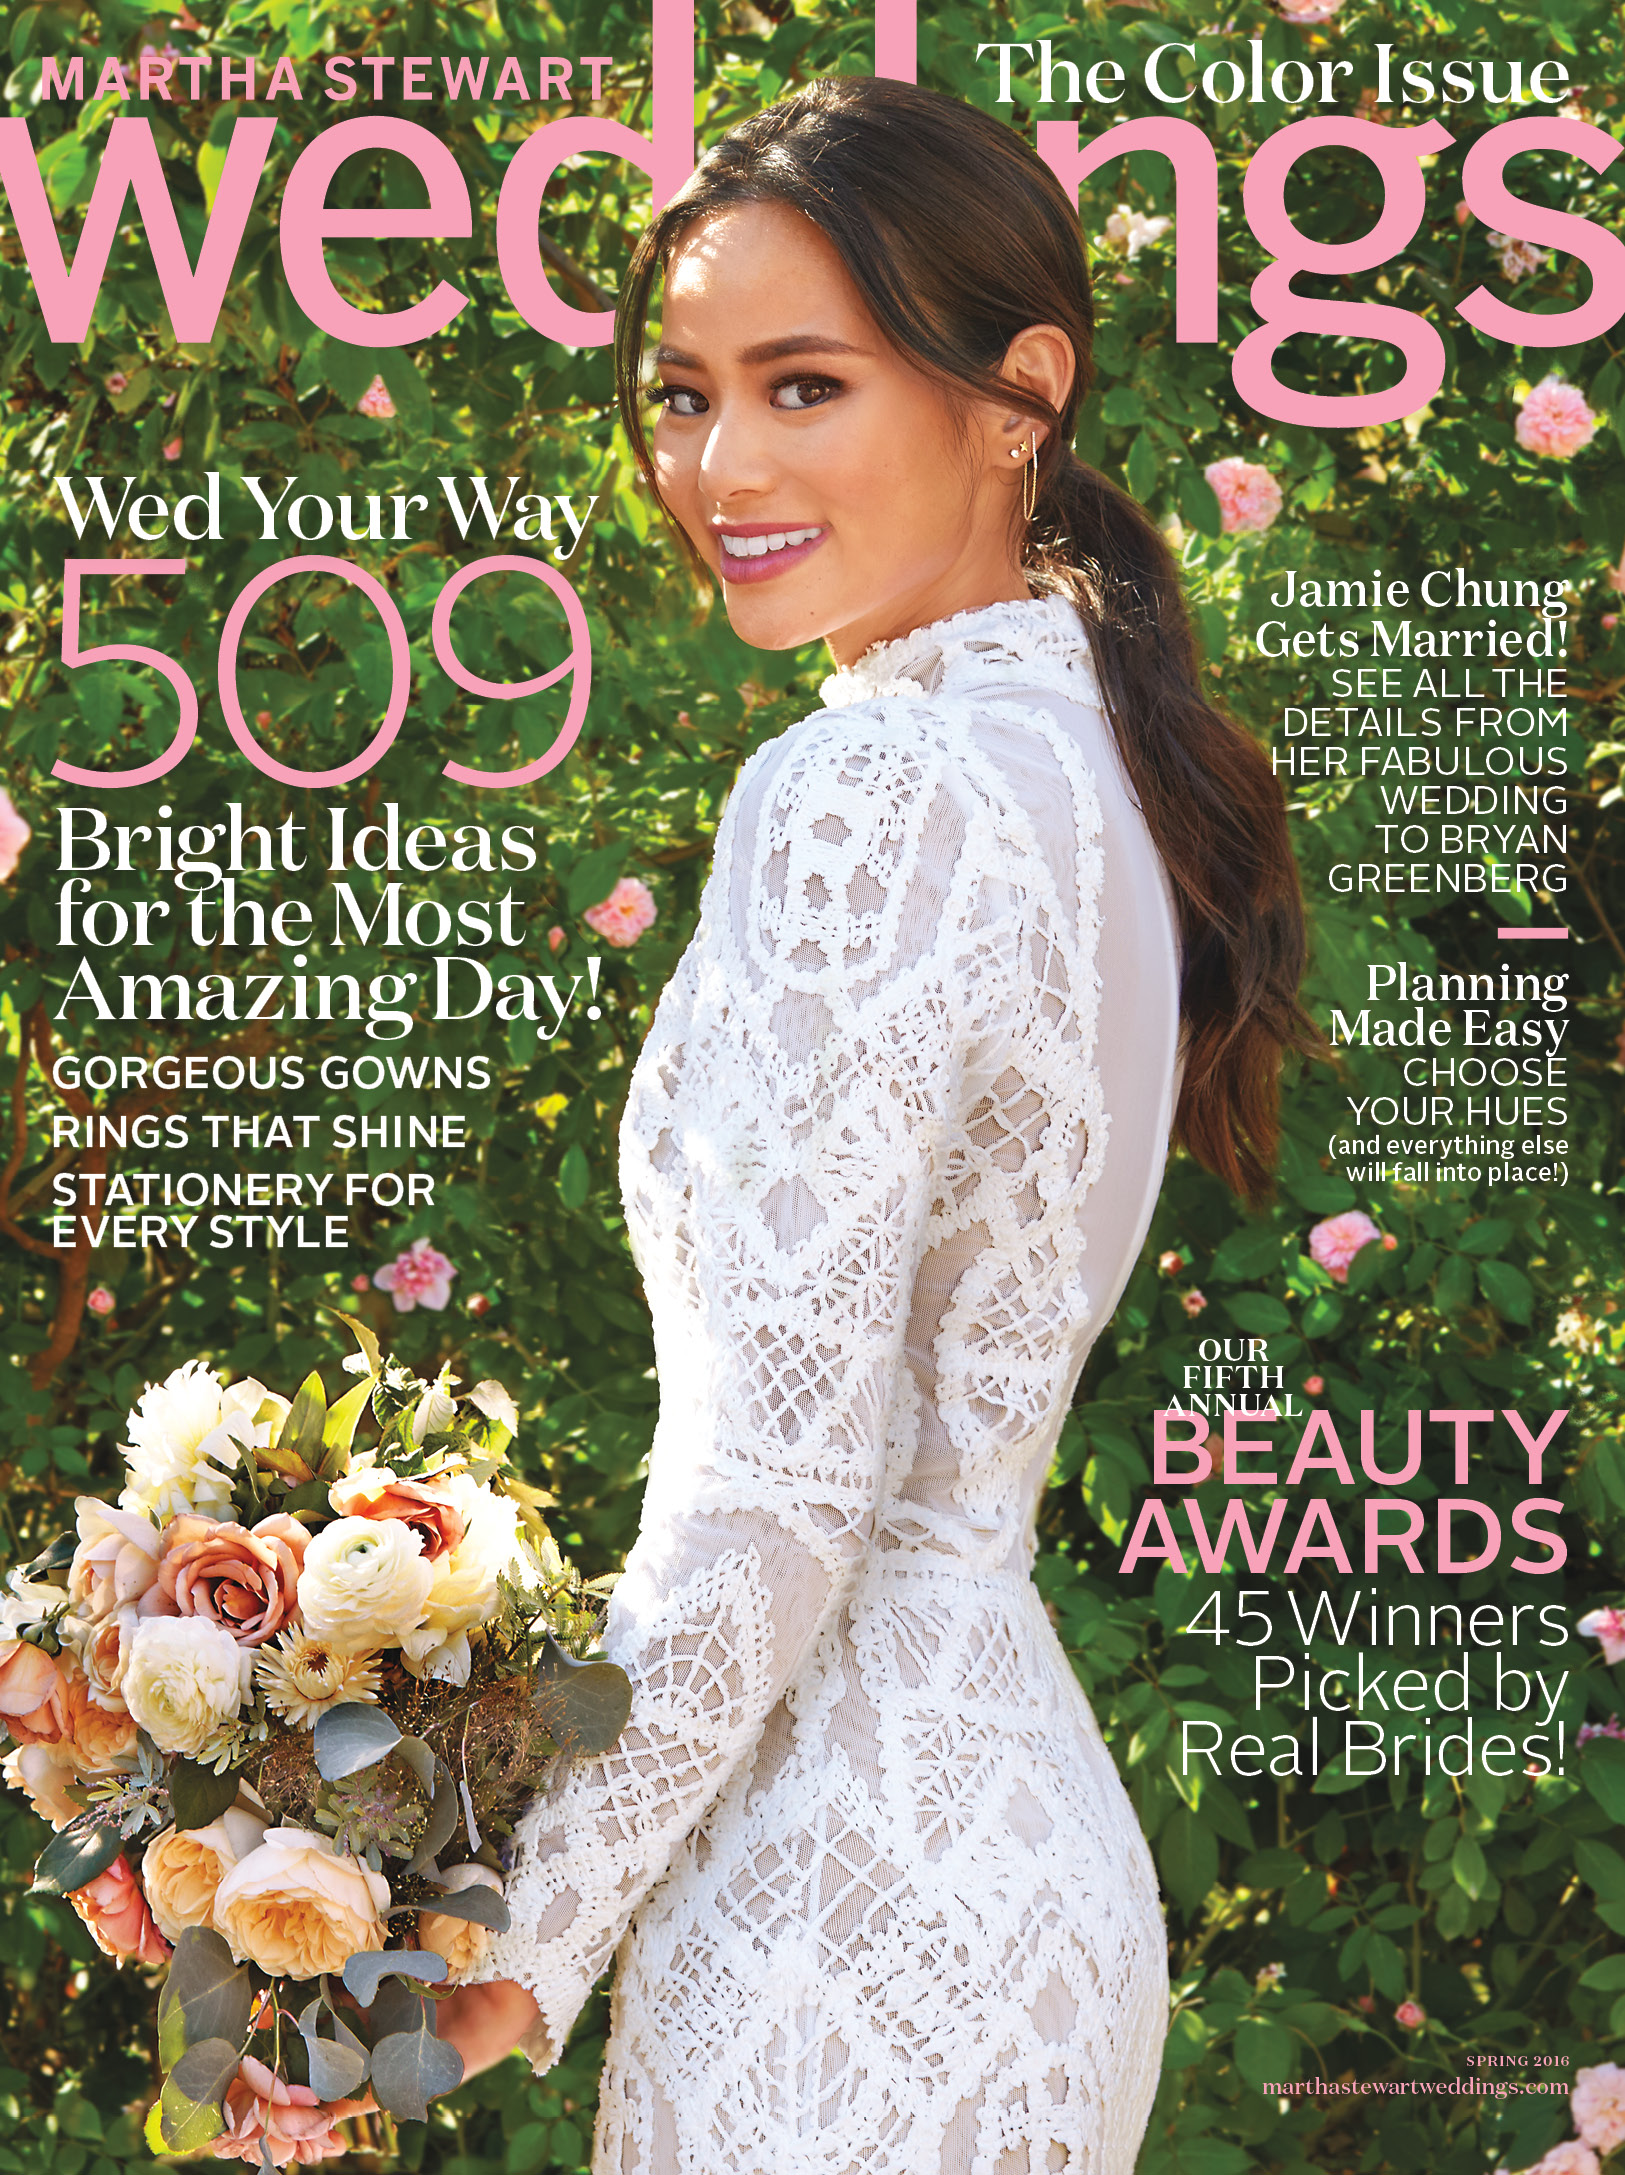 Martha-Stewart-Weddings-Spring-2016-JamieChung.jpg